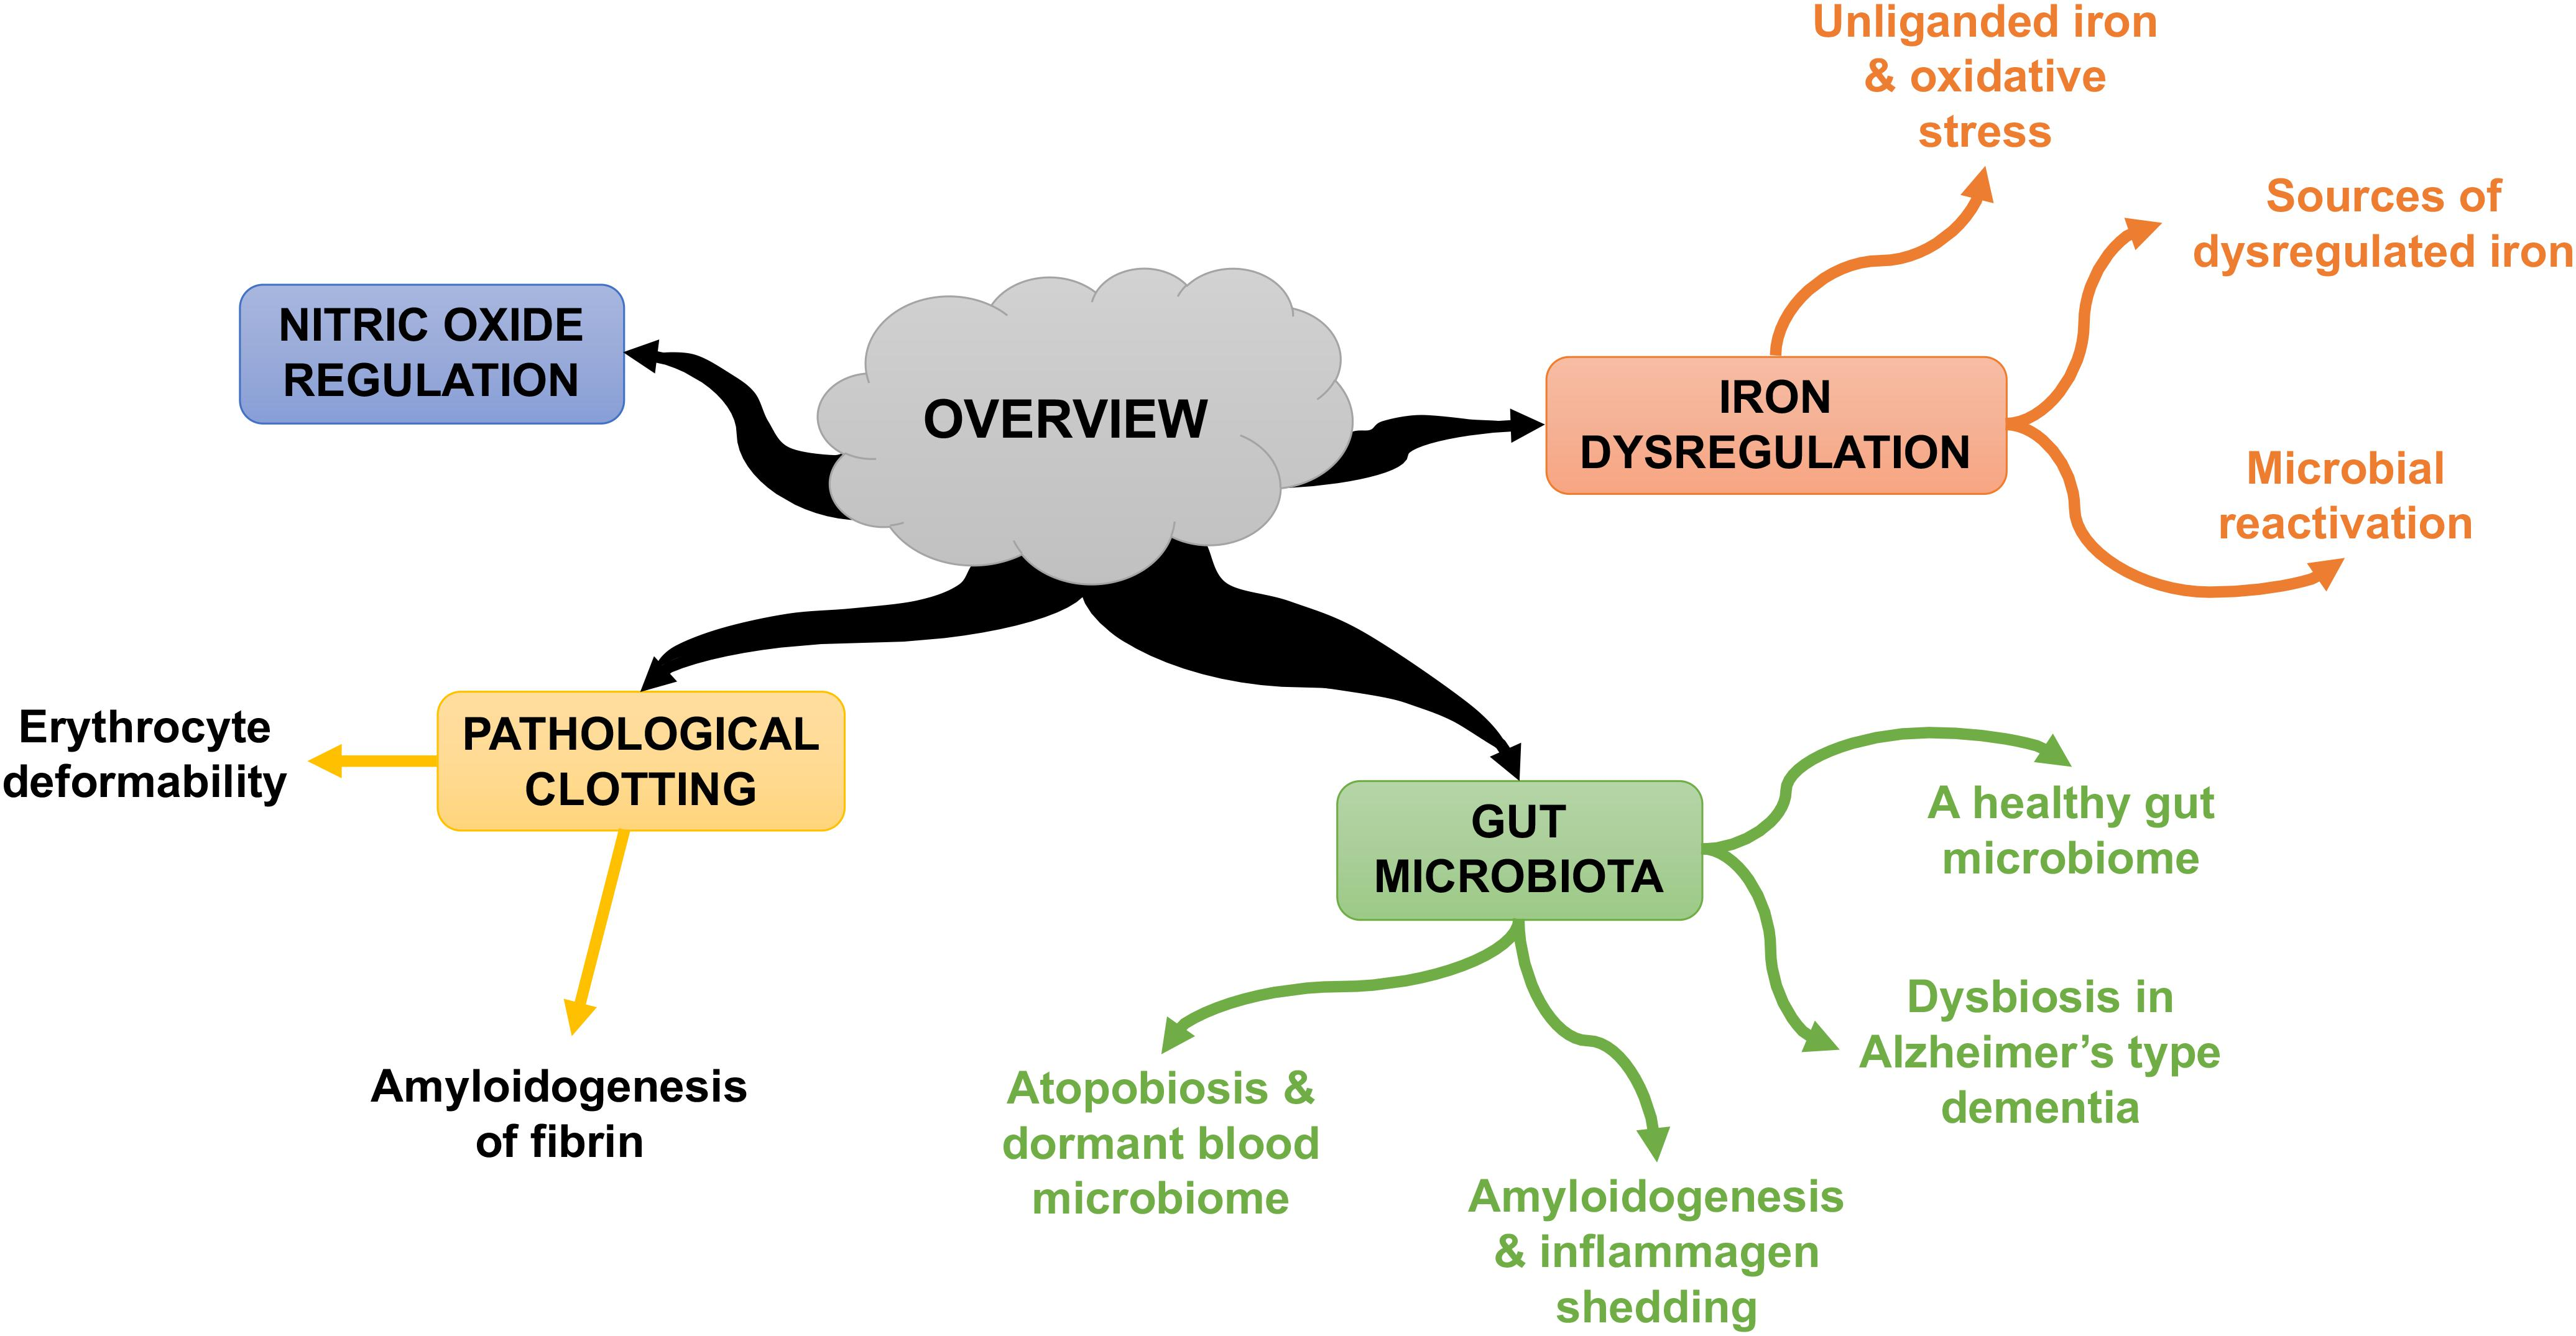 Frontiers | Iron Dysregulation and Dormant Microbes as Causative